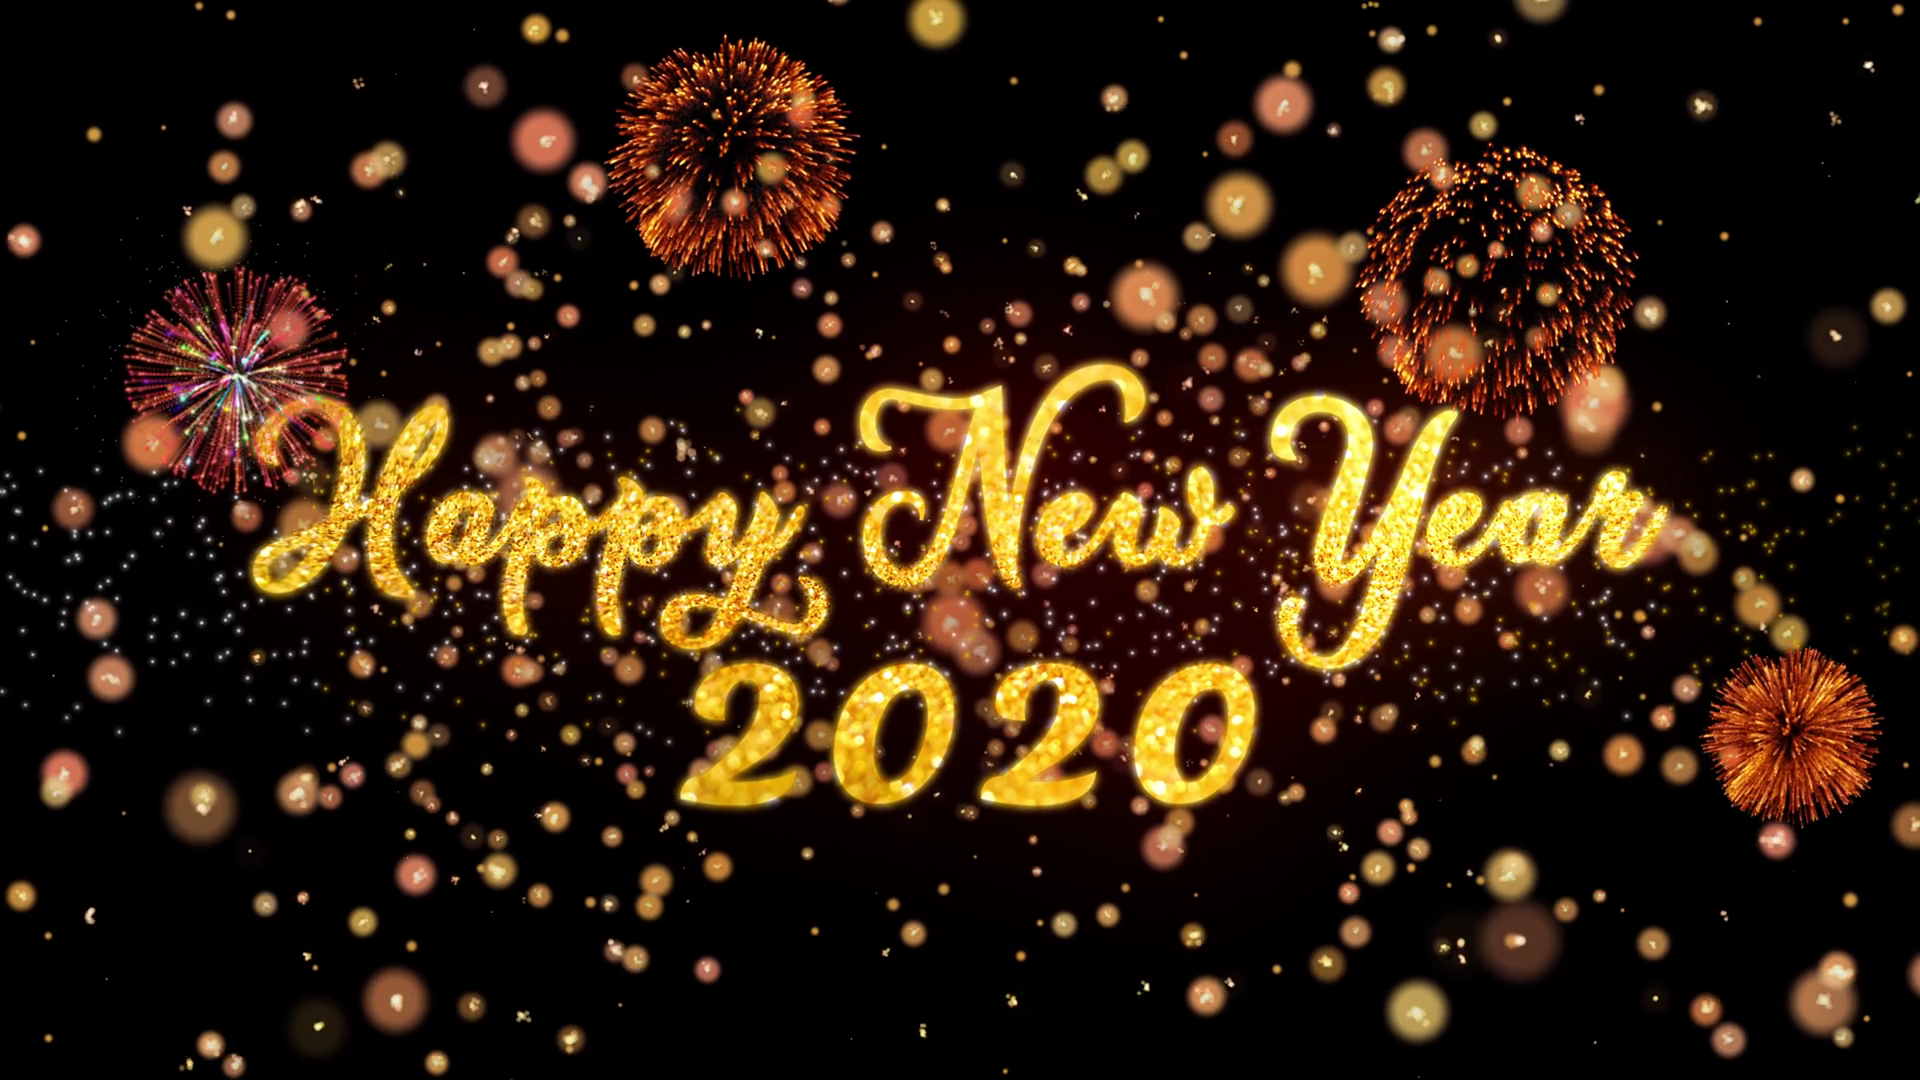 Happy New Year 2020 Wallpapers   Top Happy New Year 2020 1920x1080